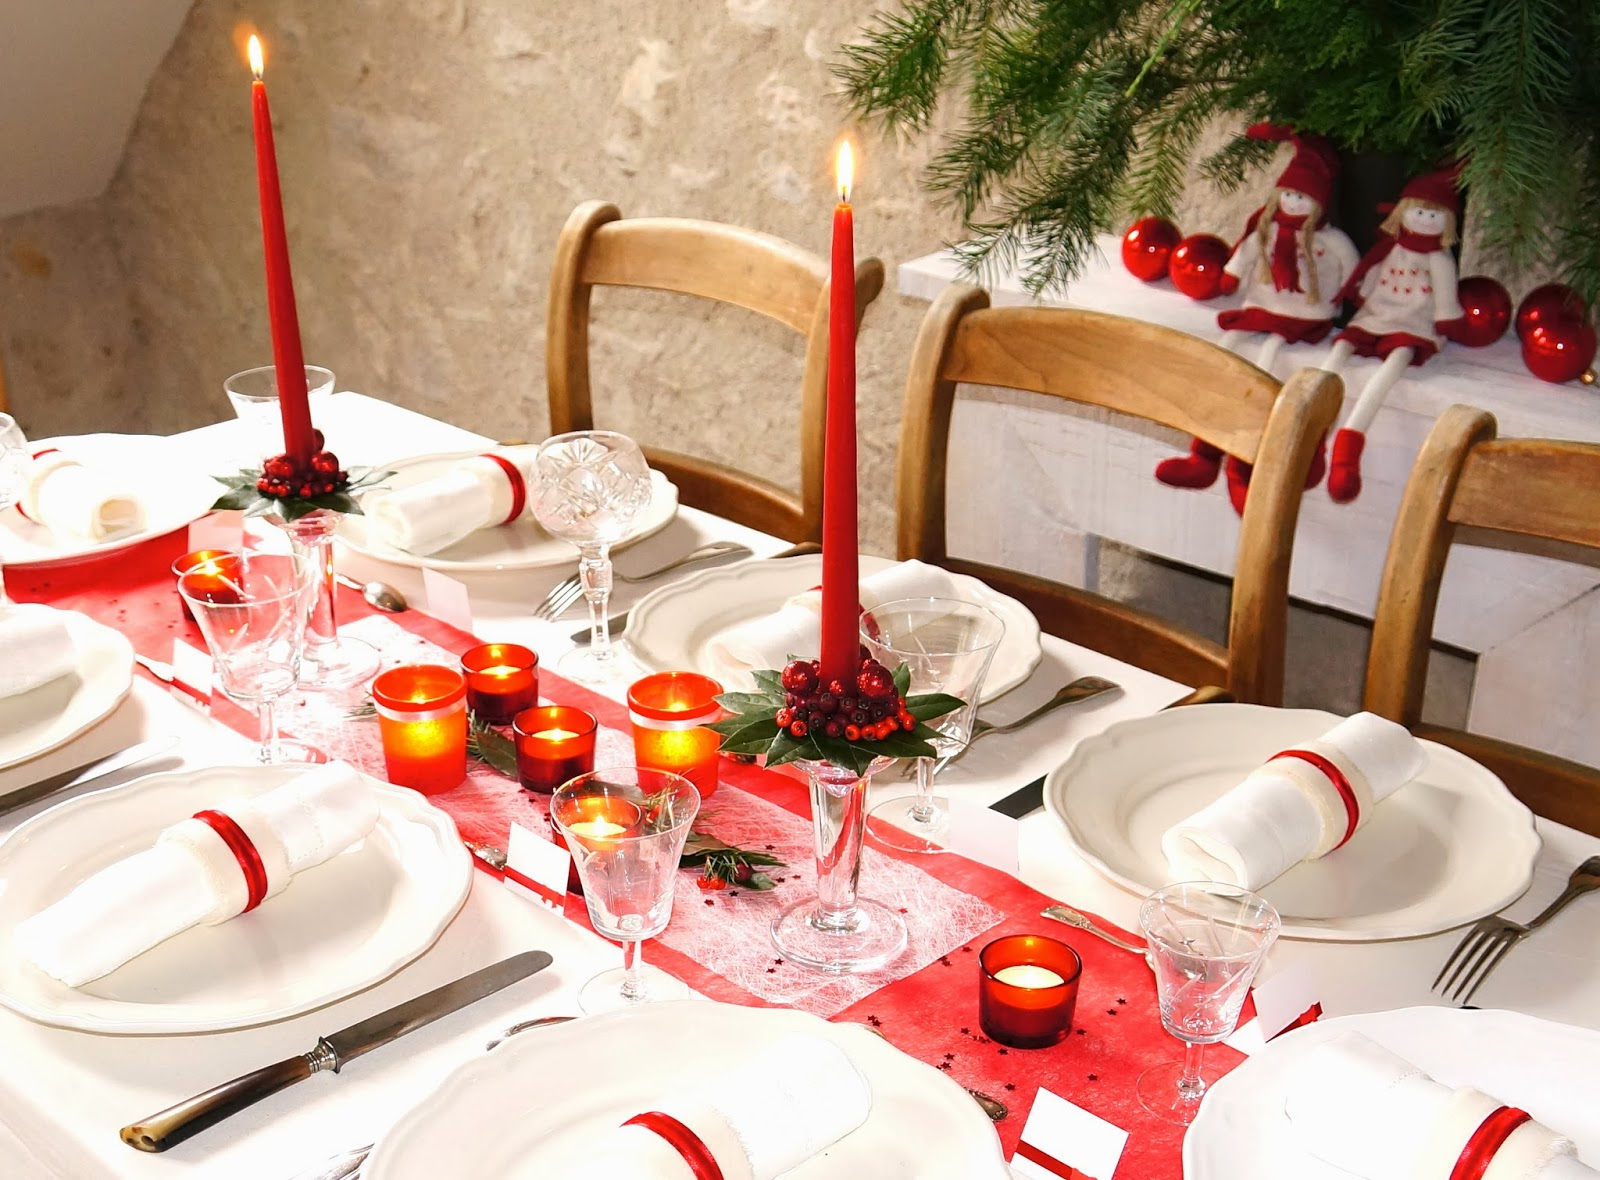 #C7A804 Ma Boutique Déco Table Décoration De Table: Décoration  6285 Decoration De Table Pour Noel Rouge Et Or 1600x1180 px @ aertt.com